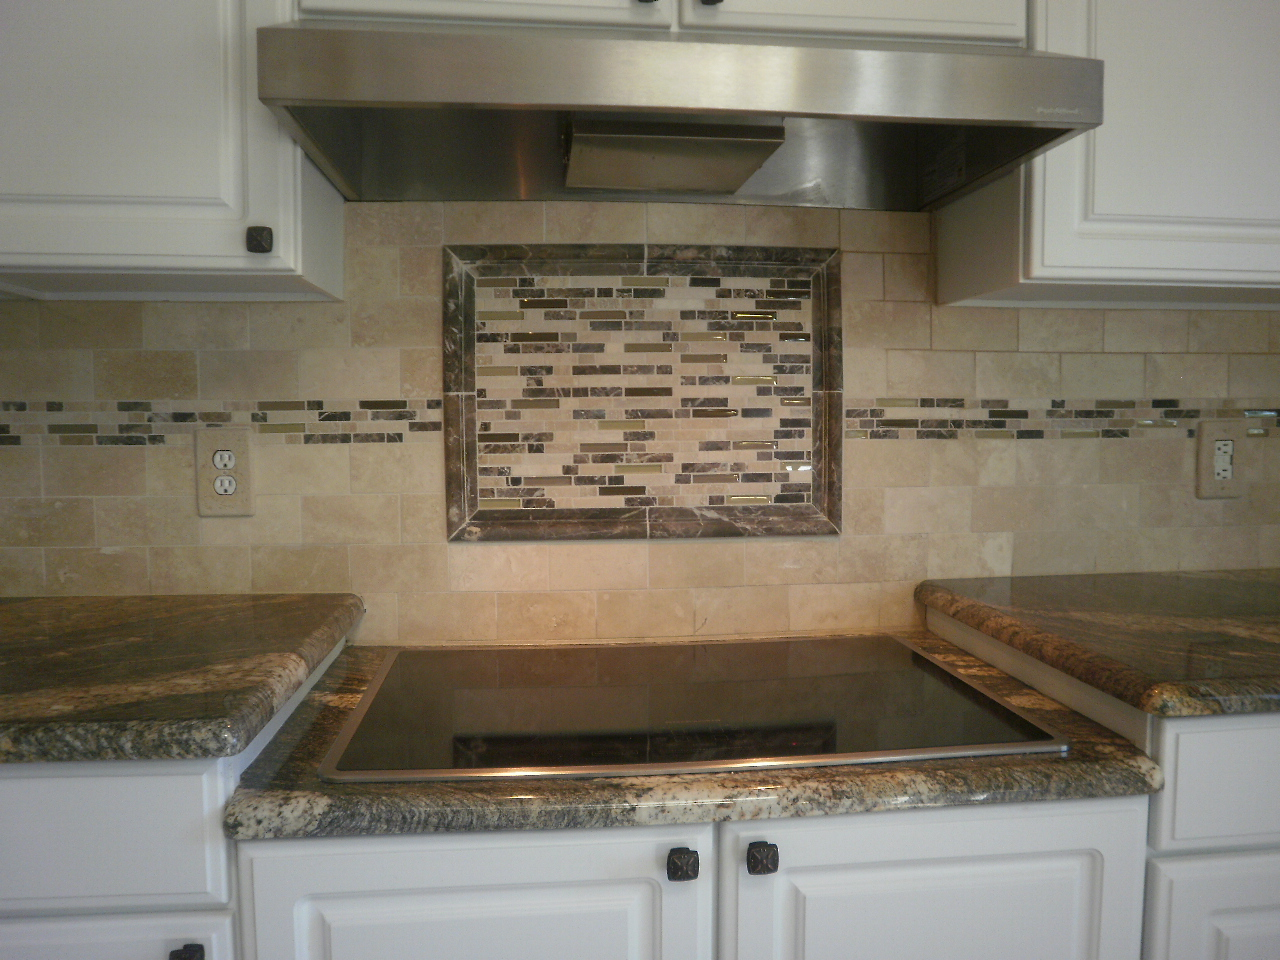 Kitchen backsplash ideas glass tile afreakatheart Backsplash photos kitchen ideas